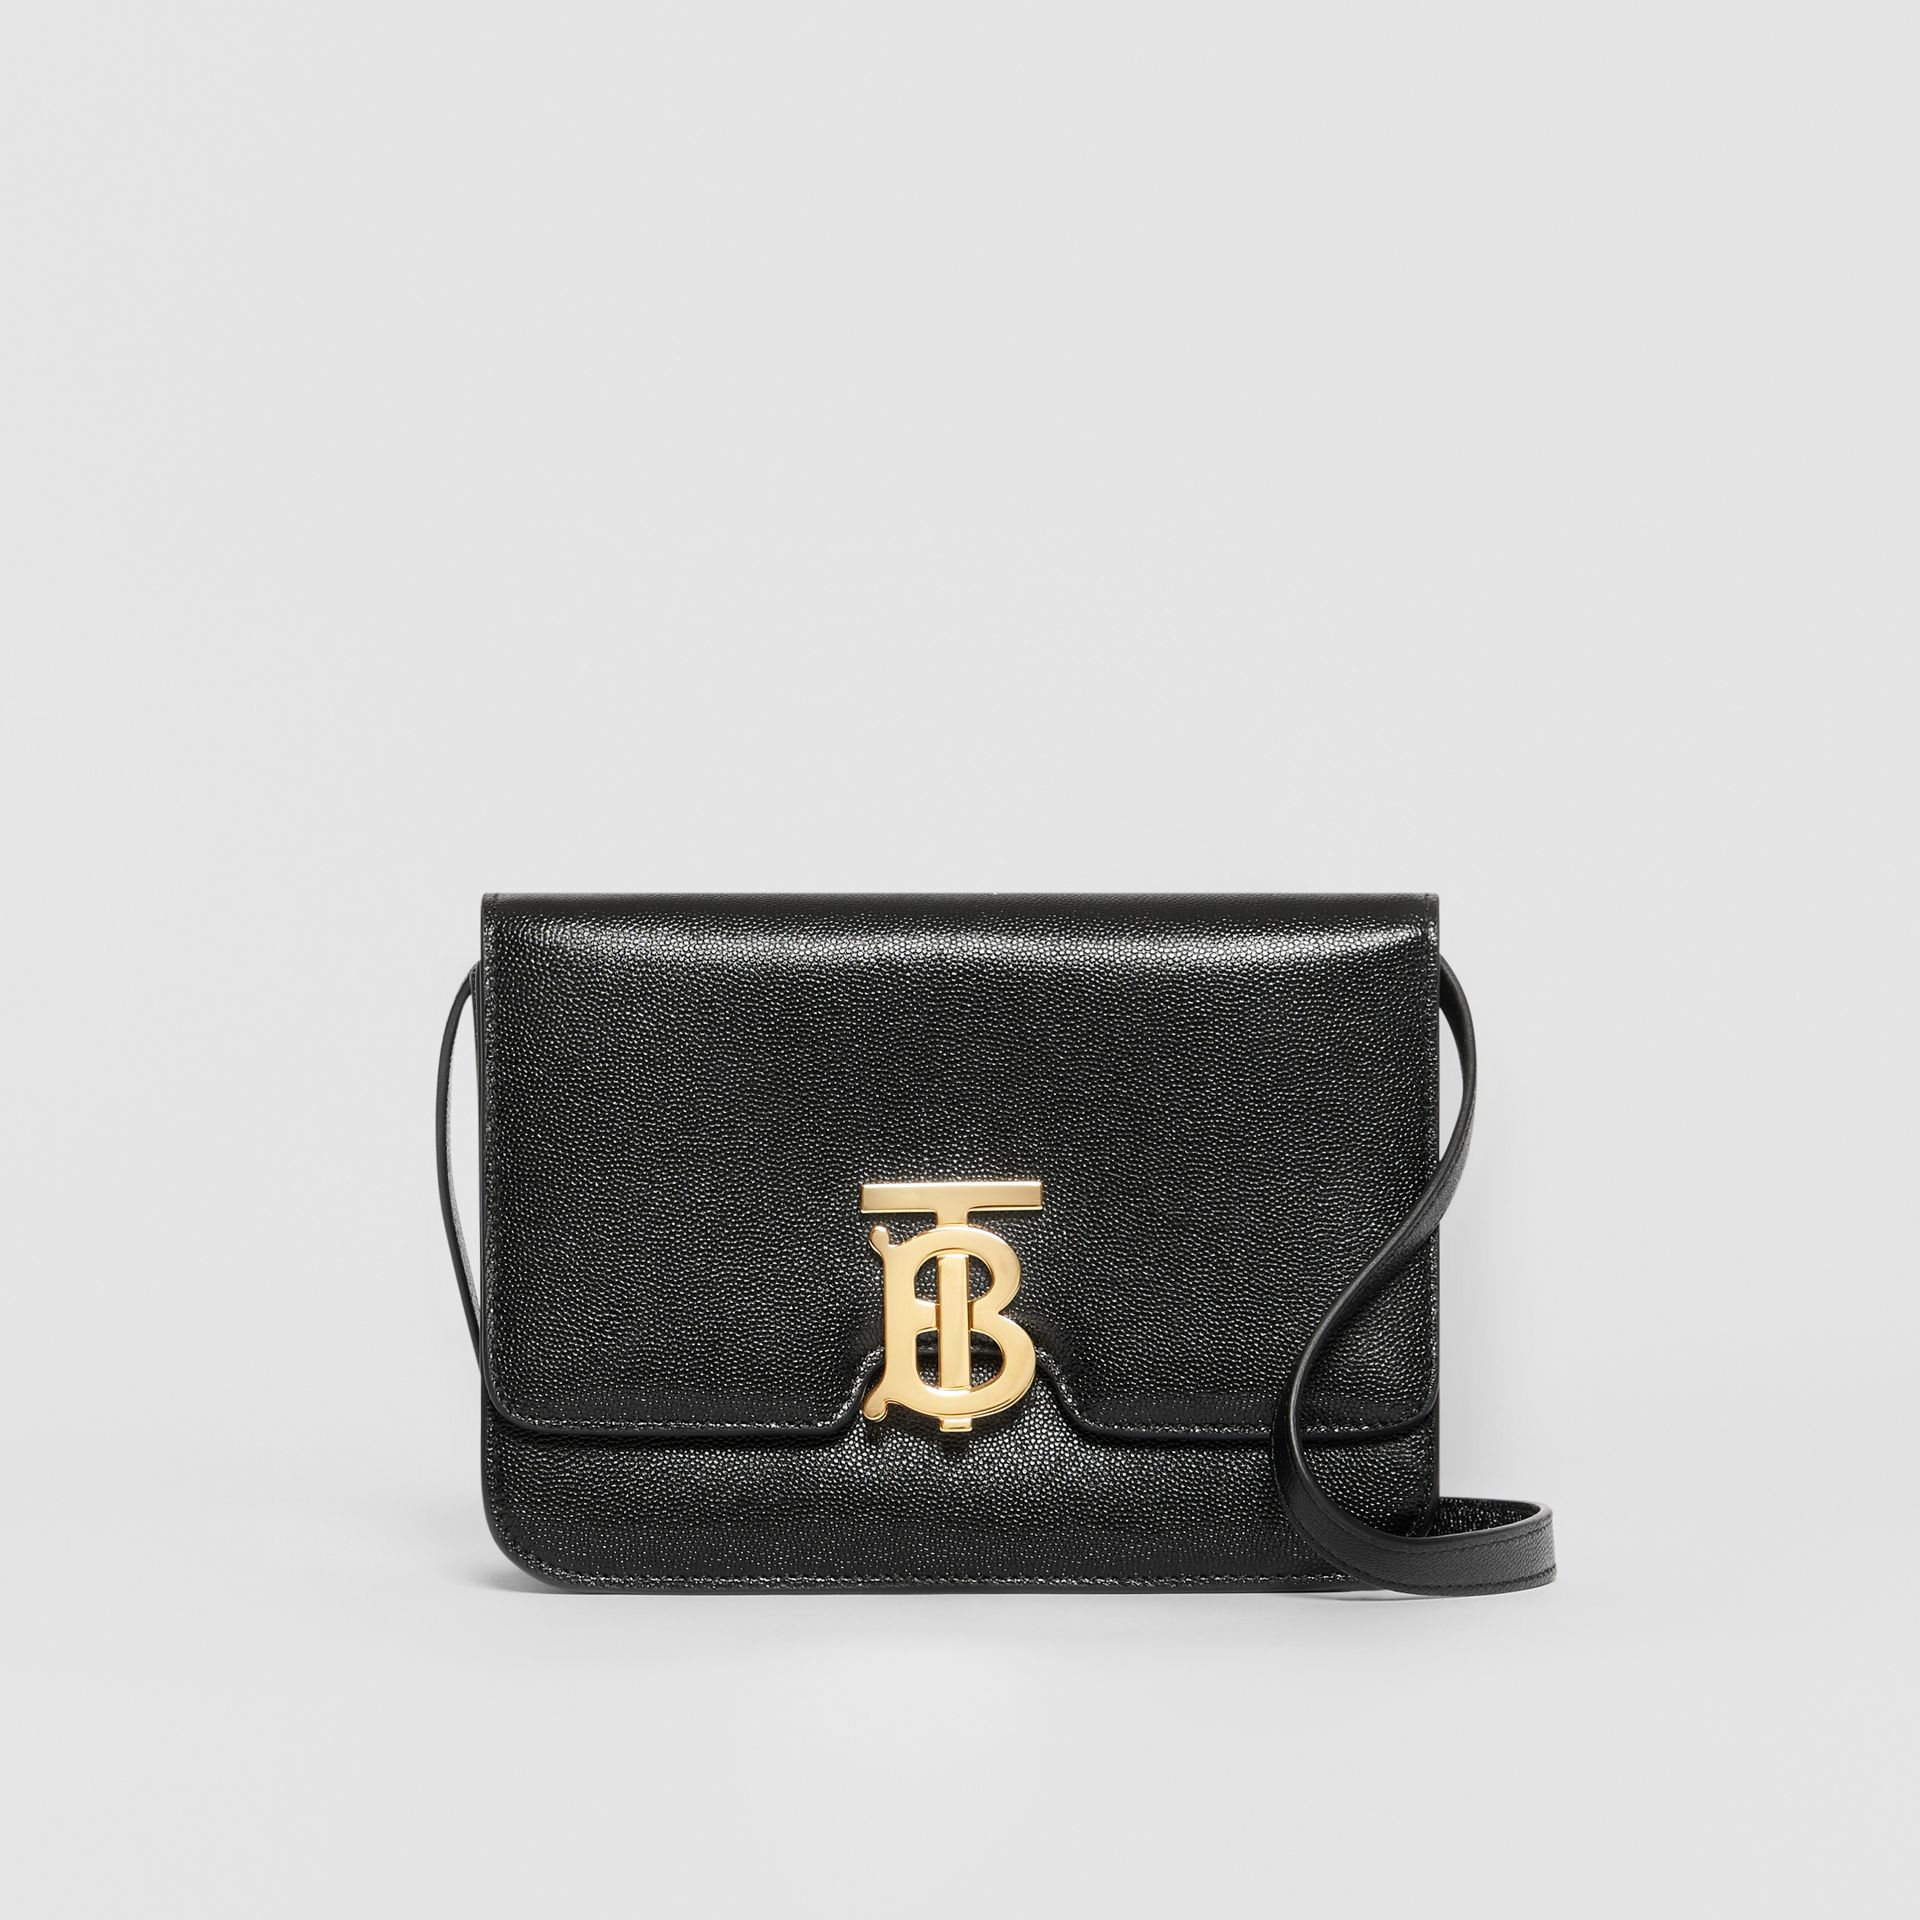 Small Grainy Leather TB Bag in Black - Women | Burberry Canada - gallery image 0